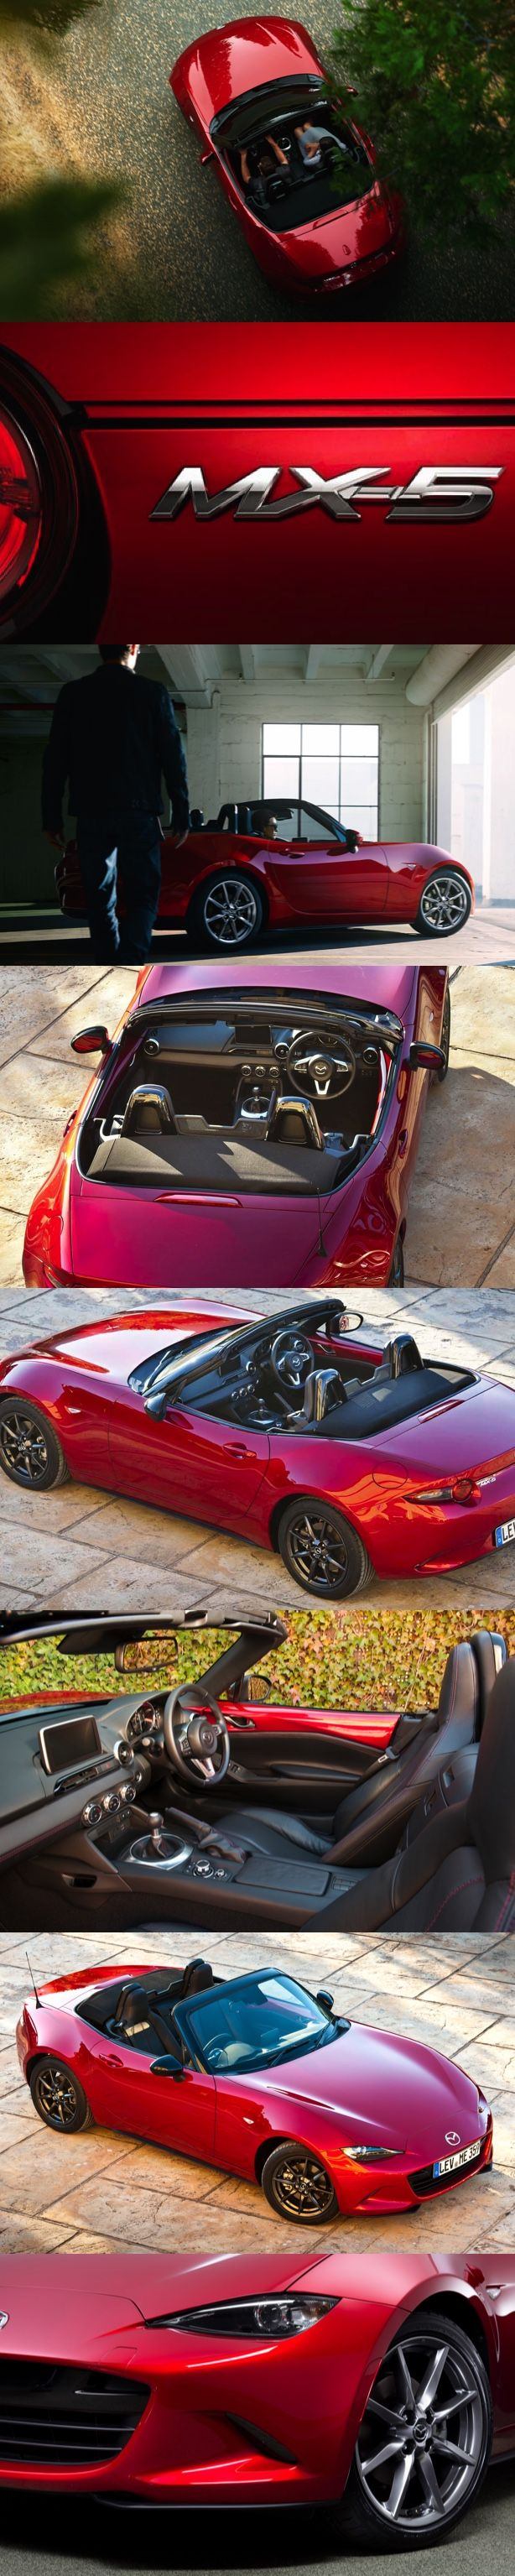 All-New MX-5 Debuts at 2015 Goodwood Festival of Speed.  2015 is a big year for Mazda at the 2015 Goodwood Festival of Speed. Gerry Judah's Central Feature sculpture will feature KODO: Mazda's 'Soul of Motion' design language.  The sculpture provides a spectacular backdrop to the event.  The highly anticipated new MX-5 sports car will be in action during the Moving Motor Show.  #Mazda #MX5 #GerryJudah #Goodwood #FOS